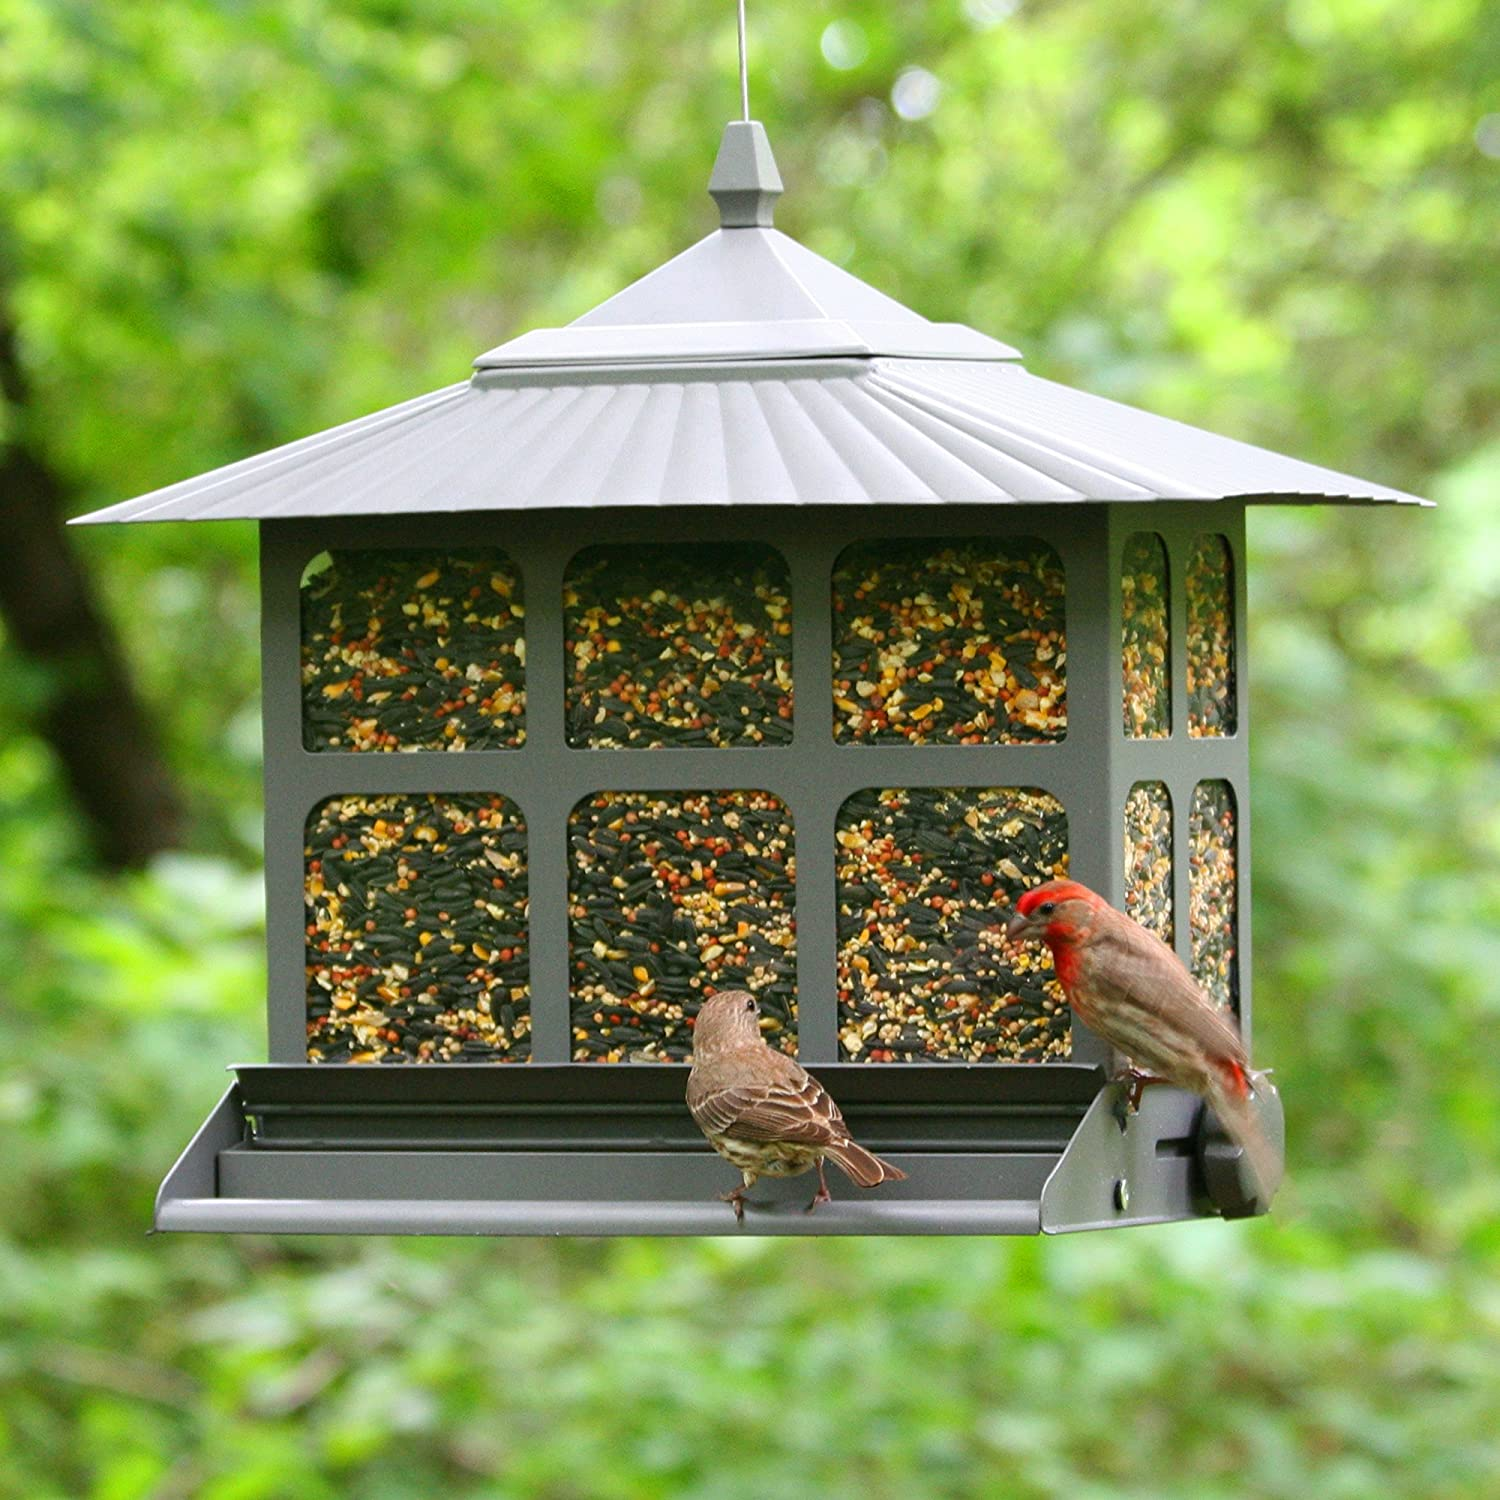 outdoor wild feeder supply to pawhut hanging pet how squirrel proof seed supplies bird garden